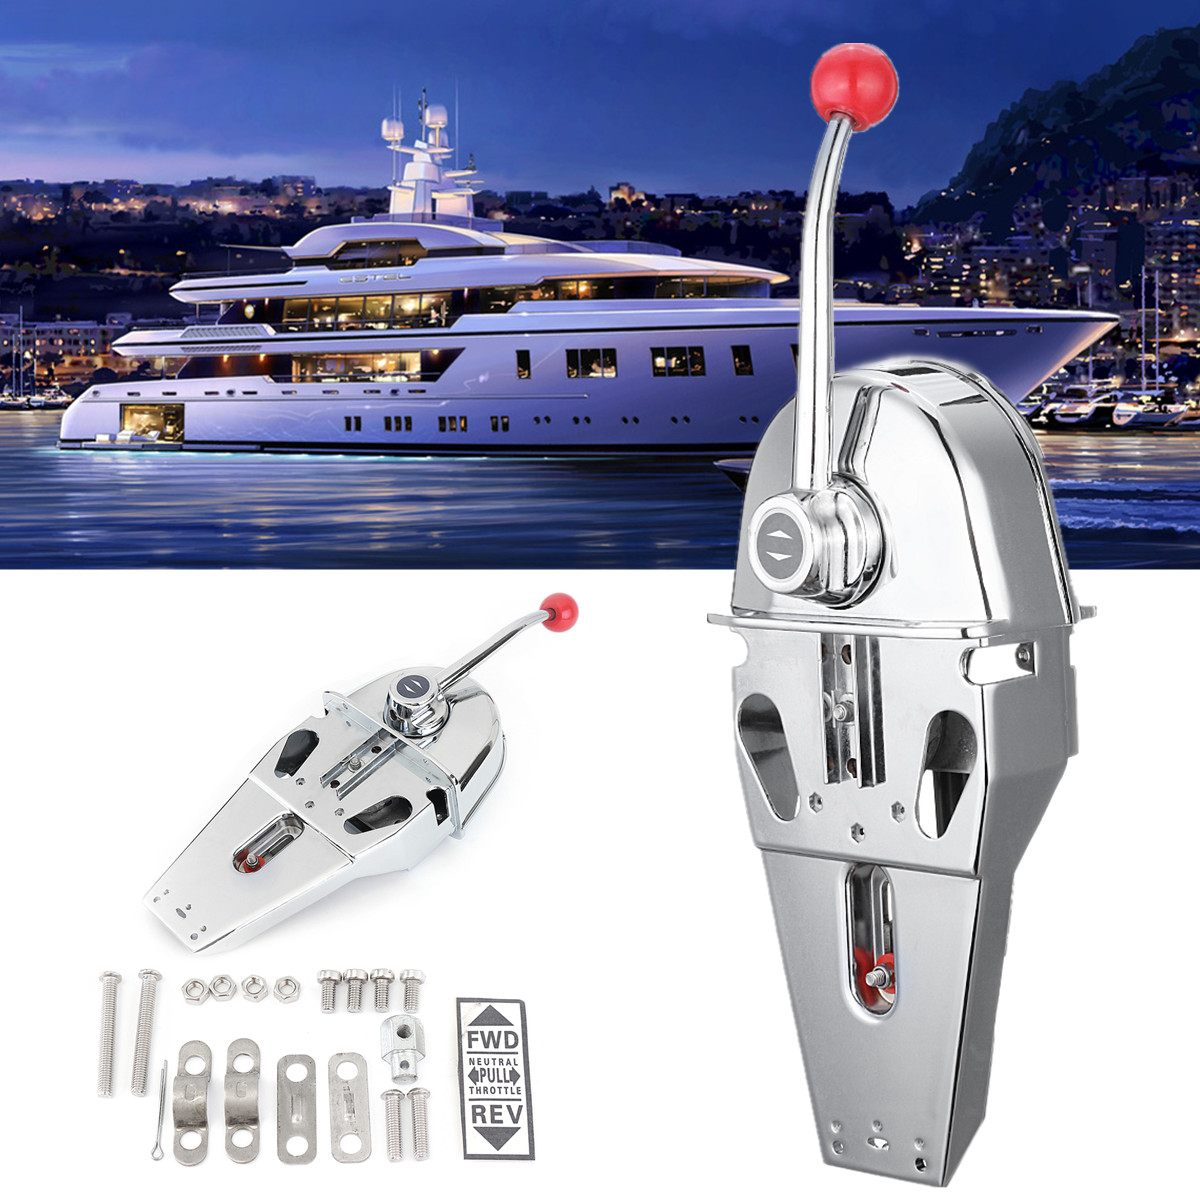 Handle Engine Control Box Top Mount 316 Stainless Steel Marine Boat Single Lever Dual Action Built